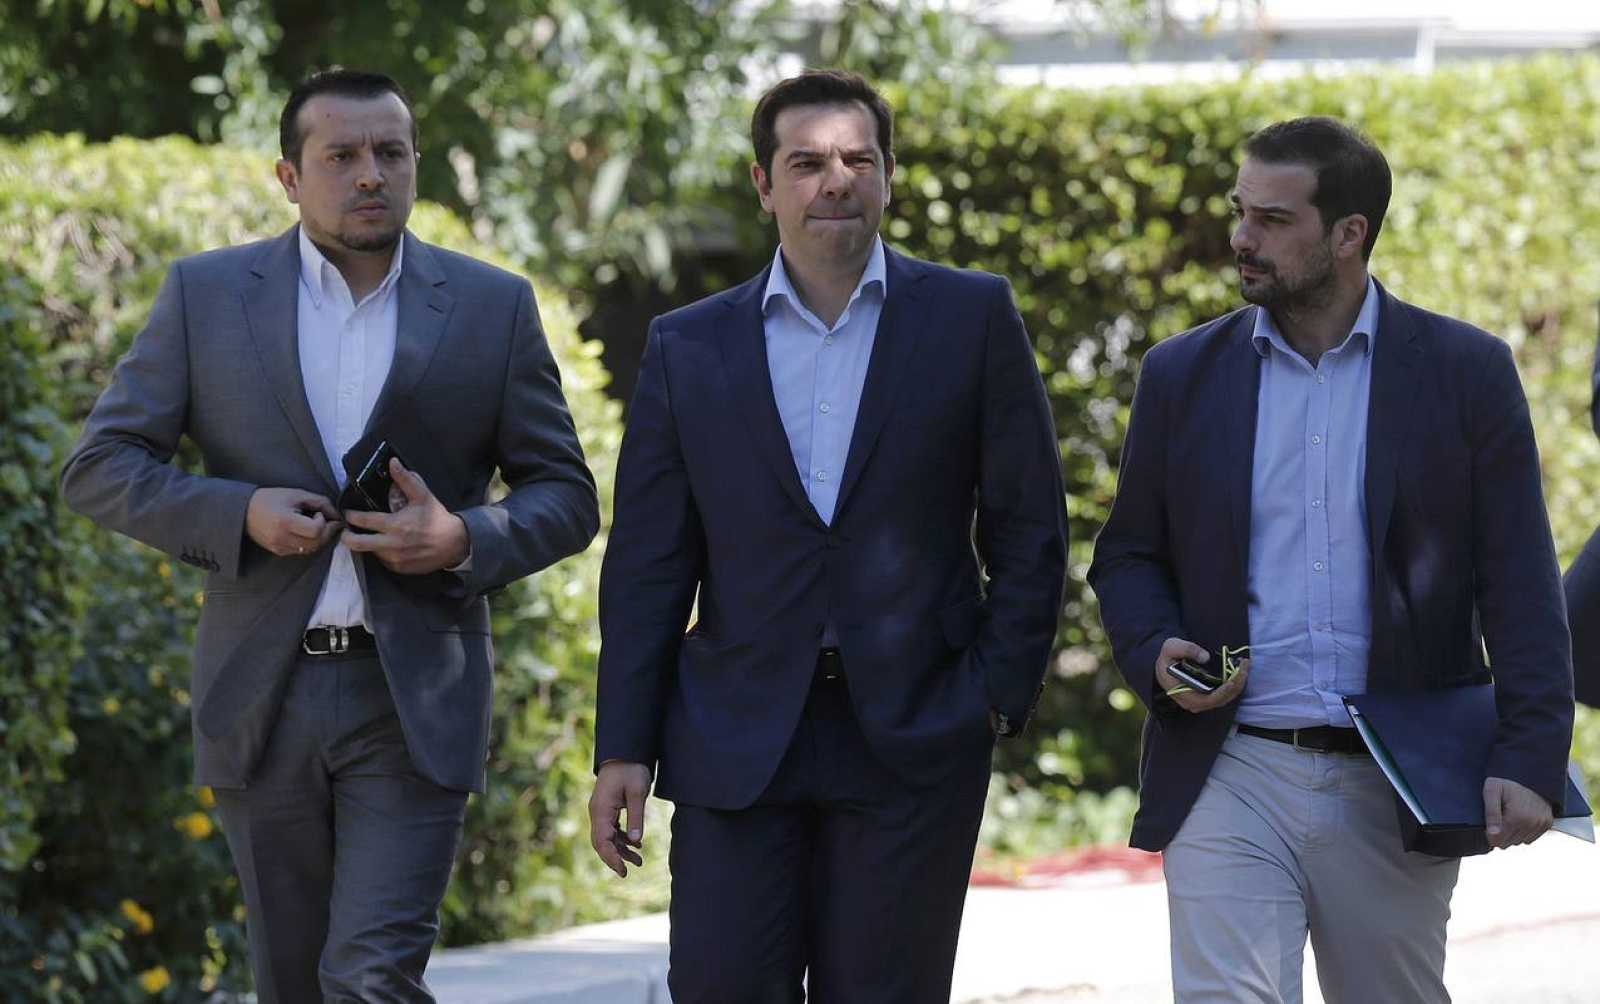 Greek Prime Minister Tsipras, Minister of State Papas and Government spokesman Sakelaridis leave the Presidential Palace for Maximos Mansion after a meeting with party leaders in central Athens